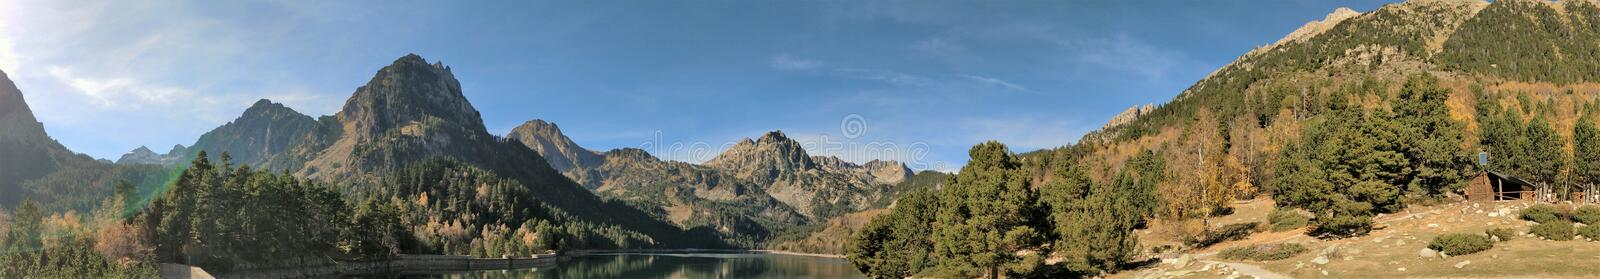 The mountains sights among the lake royalty free stock photo